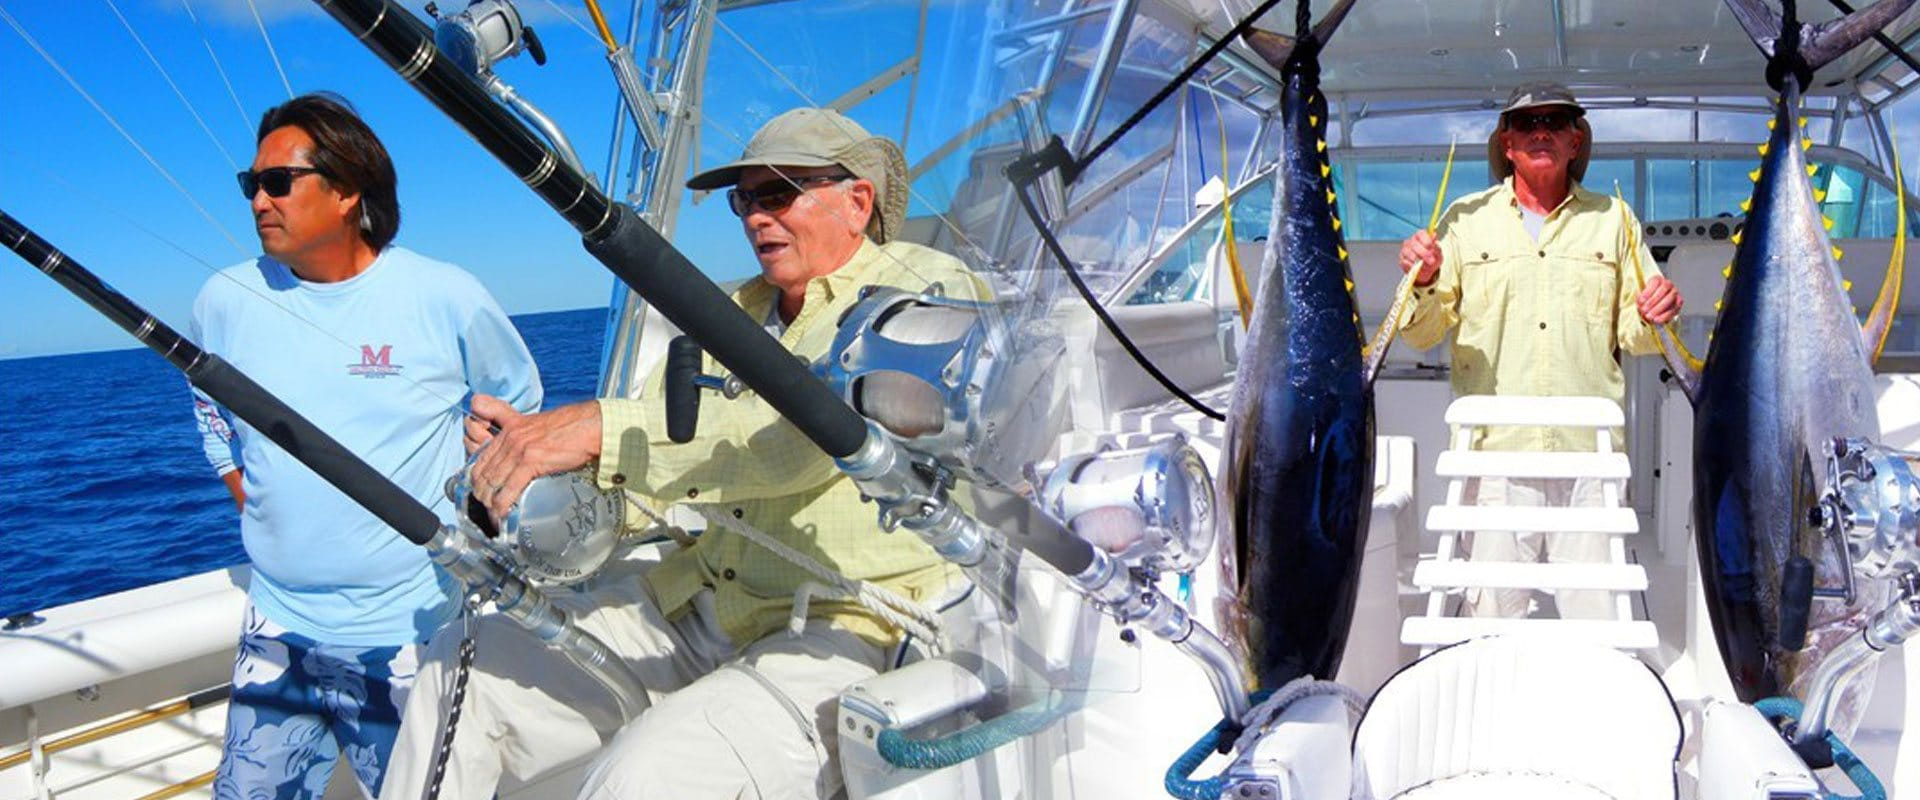 Action packed Hawaii Sport Fishing Charter